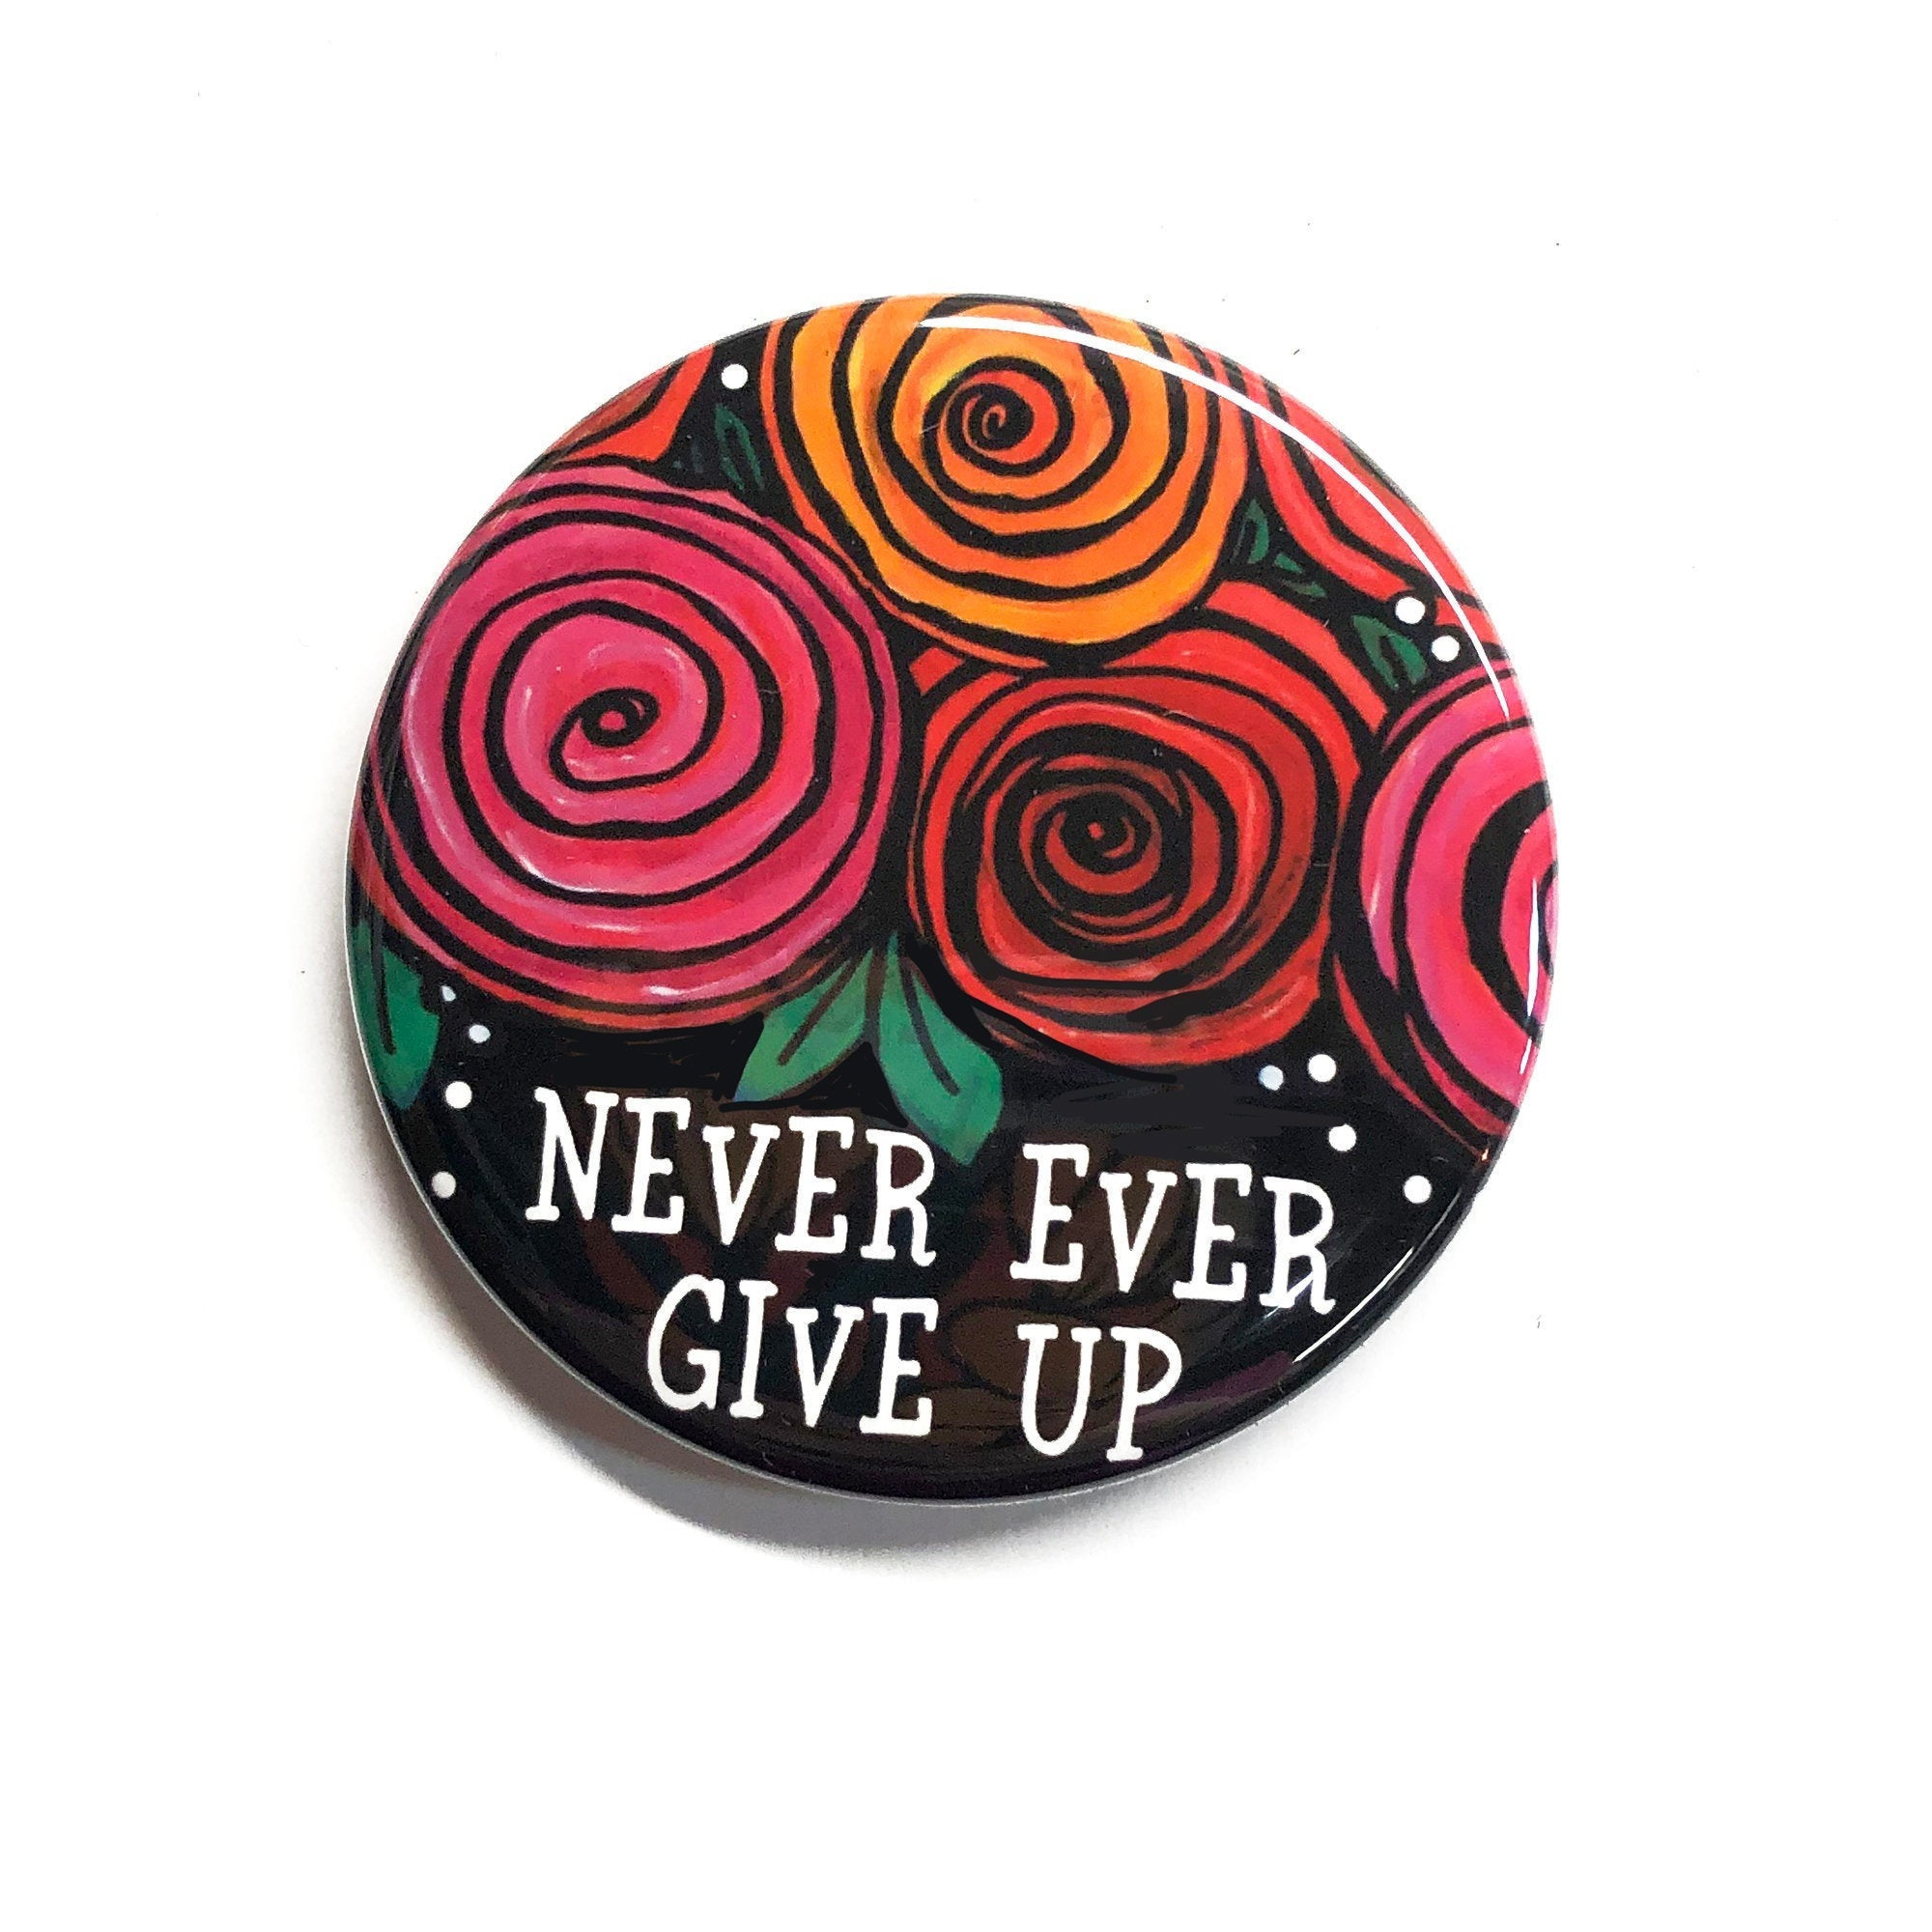 Never Ever Give Up Magnet, Pin or Pocket Mirror